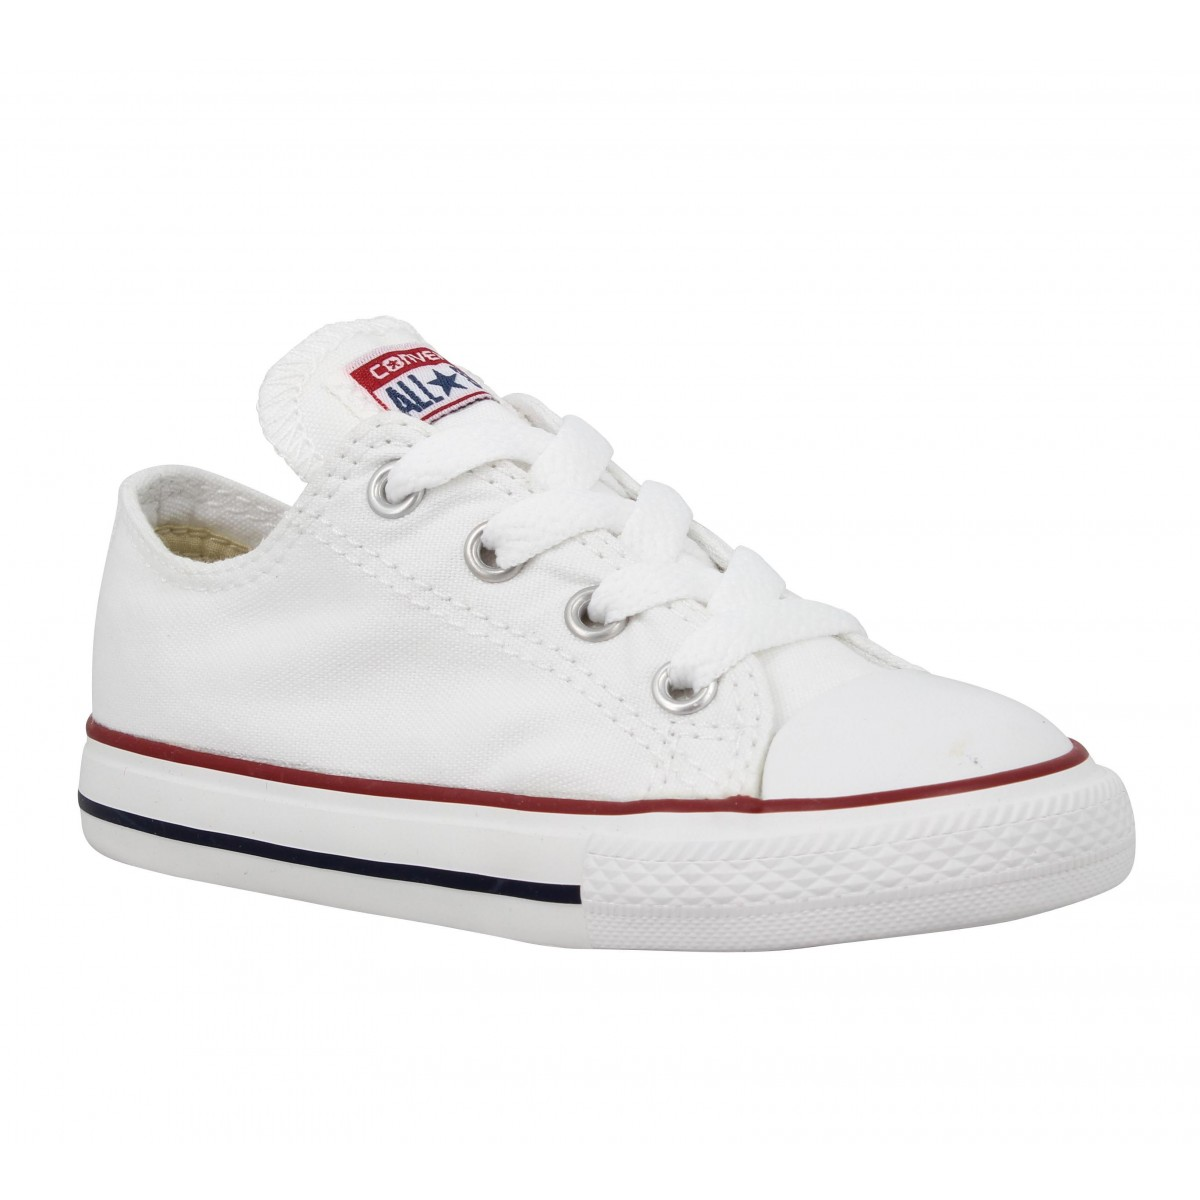 43d225b1104f1 Baskets CONVERSE Chuck Taylor All Star toile Enfant Blanc